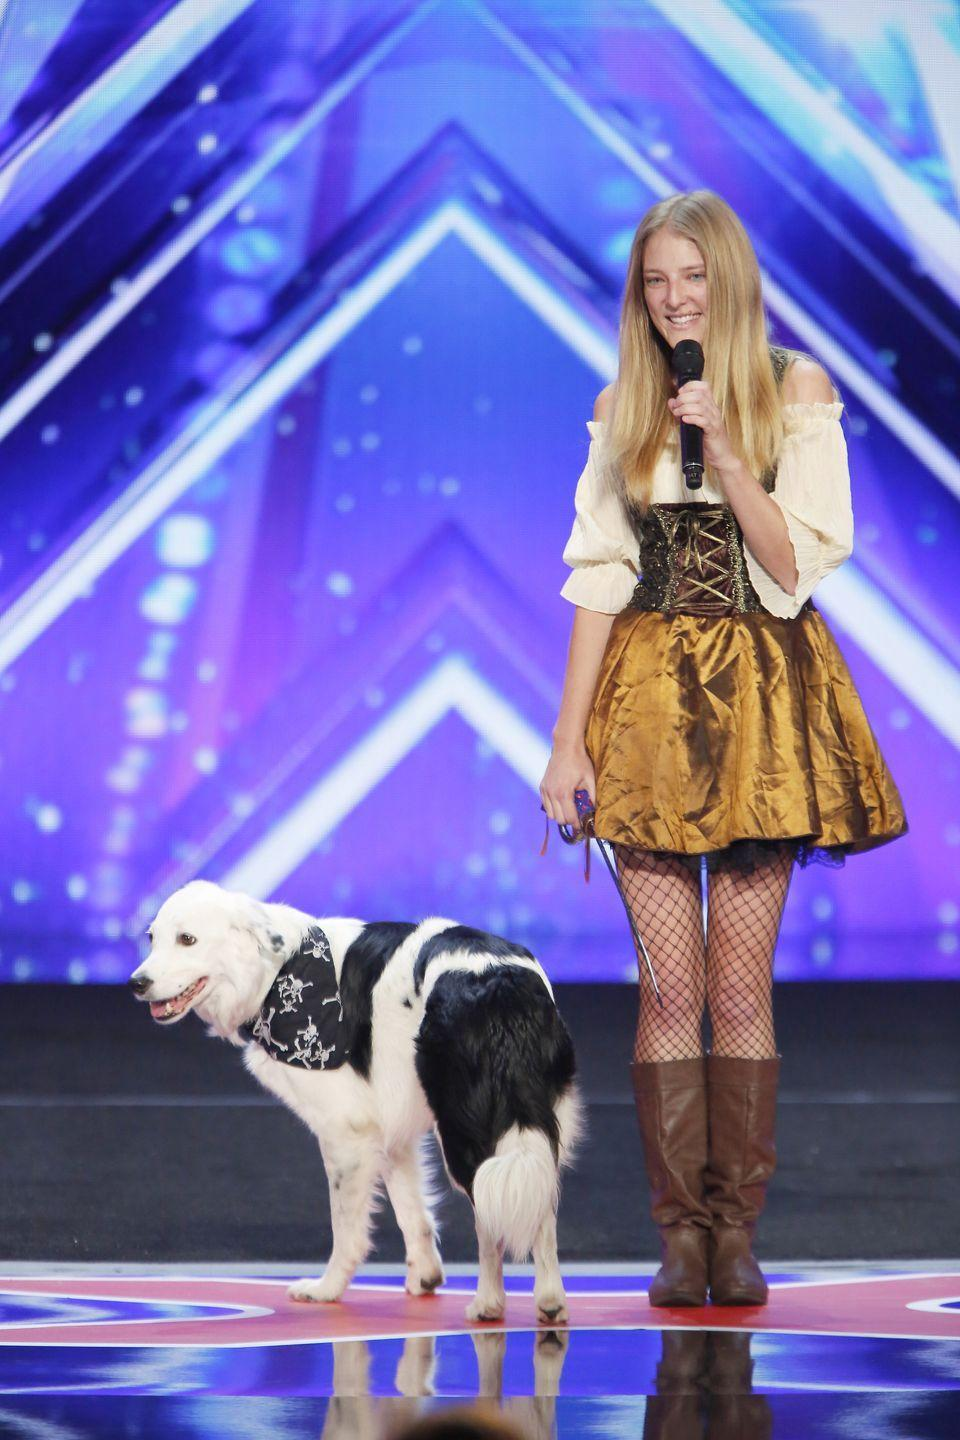 "<p>To prevent people from showing up with wild animals, the <em>AGT </em>team requires that contestants bring vaccine records for any pets. Contestants should also <a href=""https://www.americasgottalentauditions.com/faq/open-call/"" rel=""nofollow noopener"" target=""_blank"" data-ylk=""slk:fill out a form online"" class=""link rapid-noclick-resp"">fill out a form online</a> to find out if there are any additional steps they need to take before the big day. </p>"